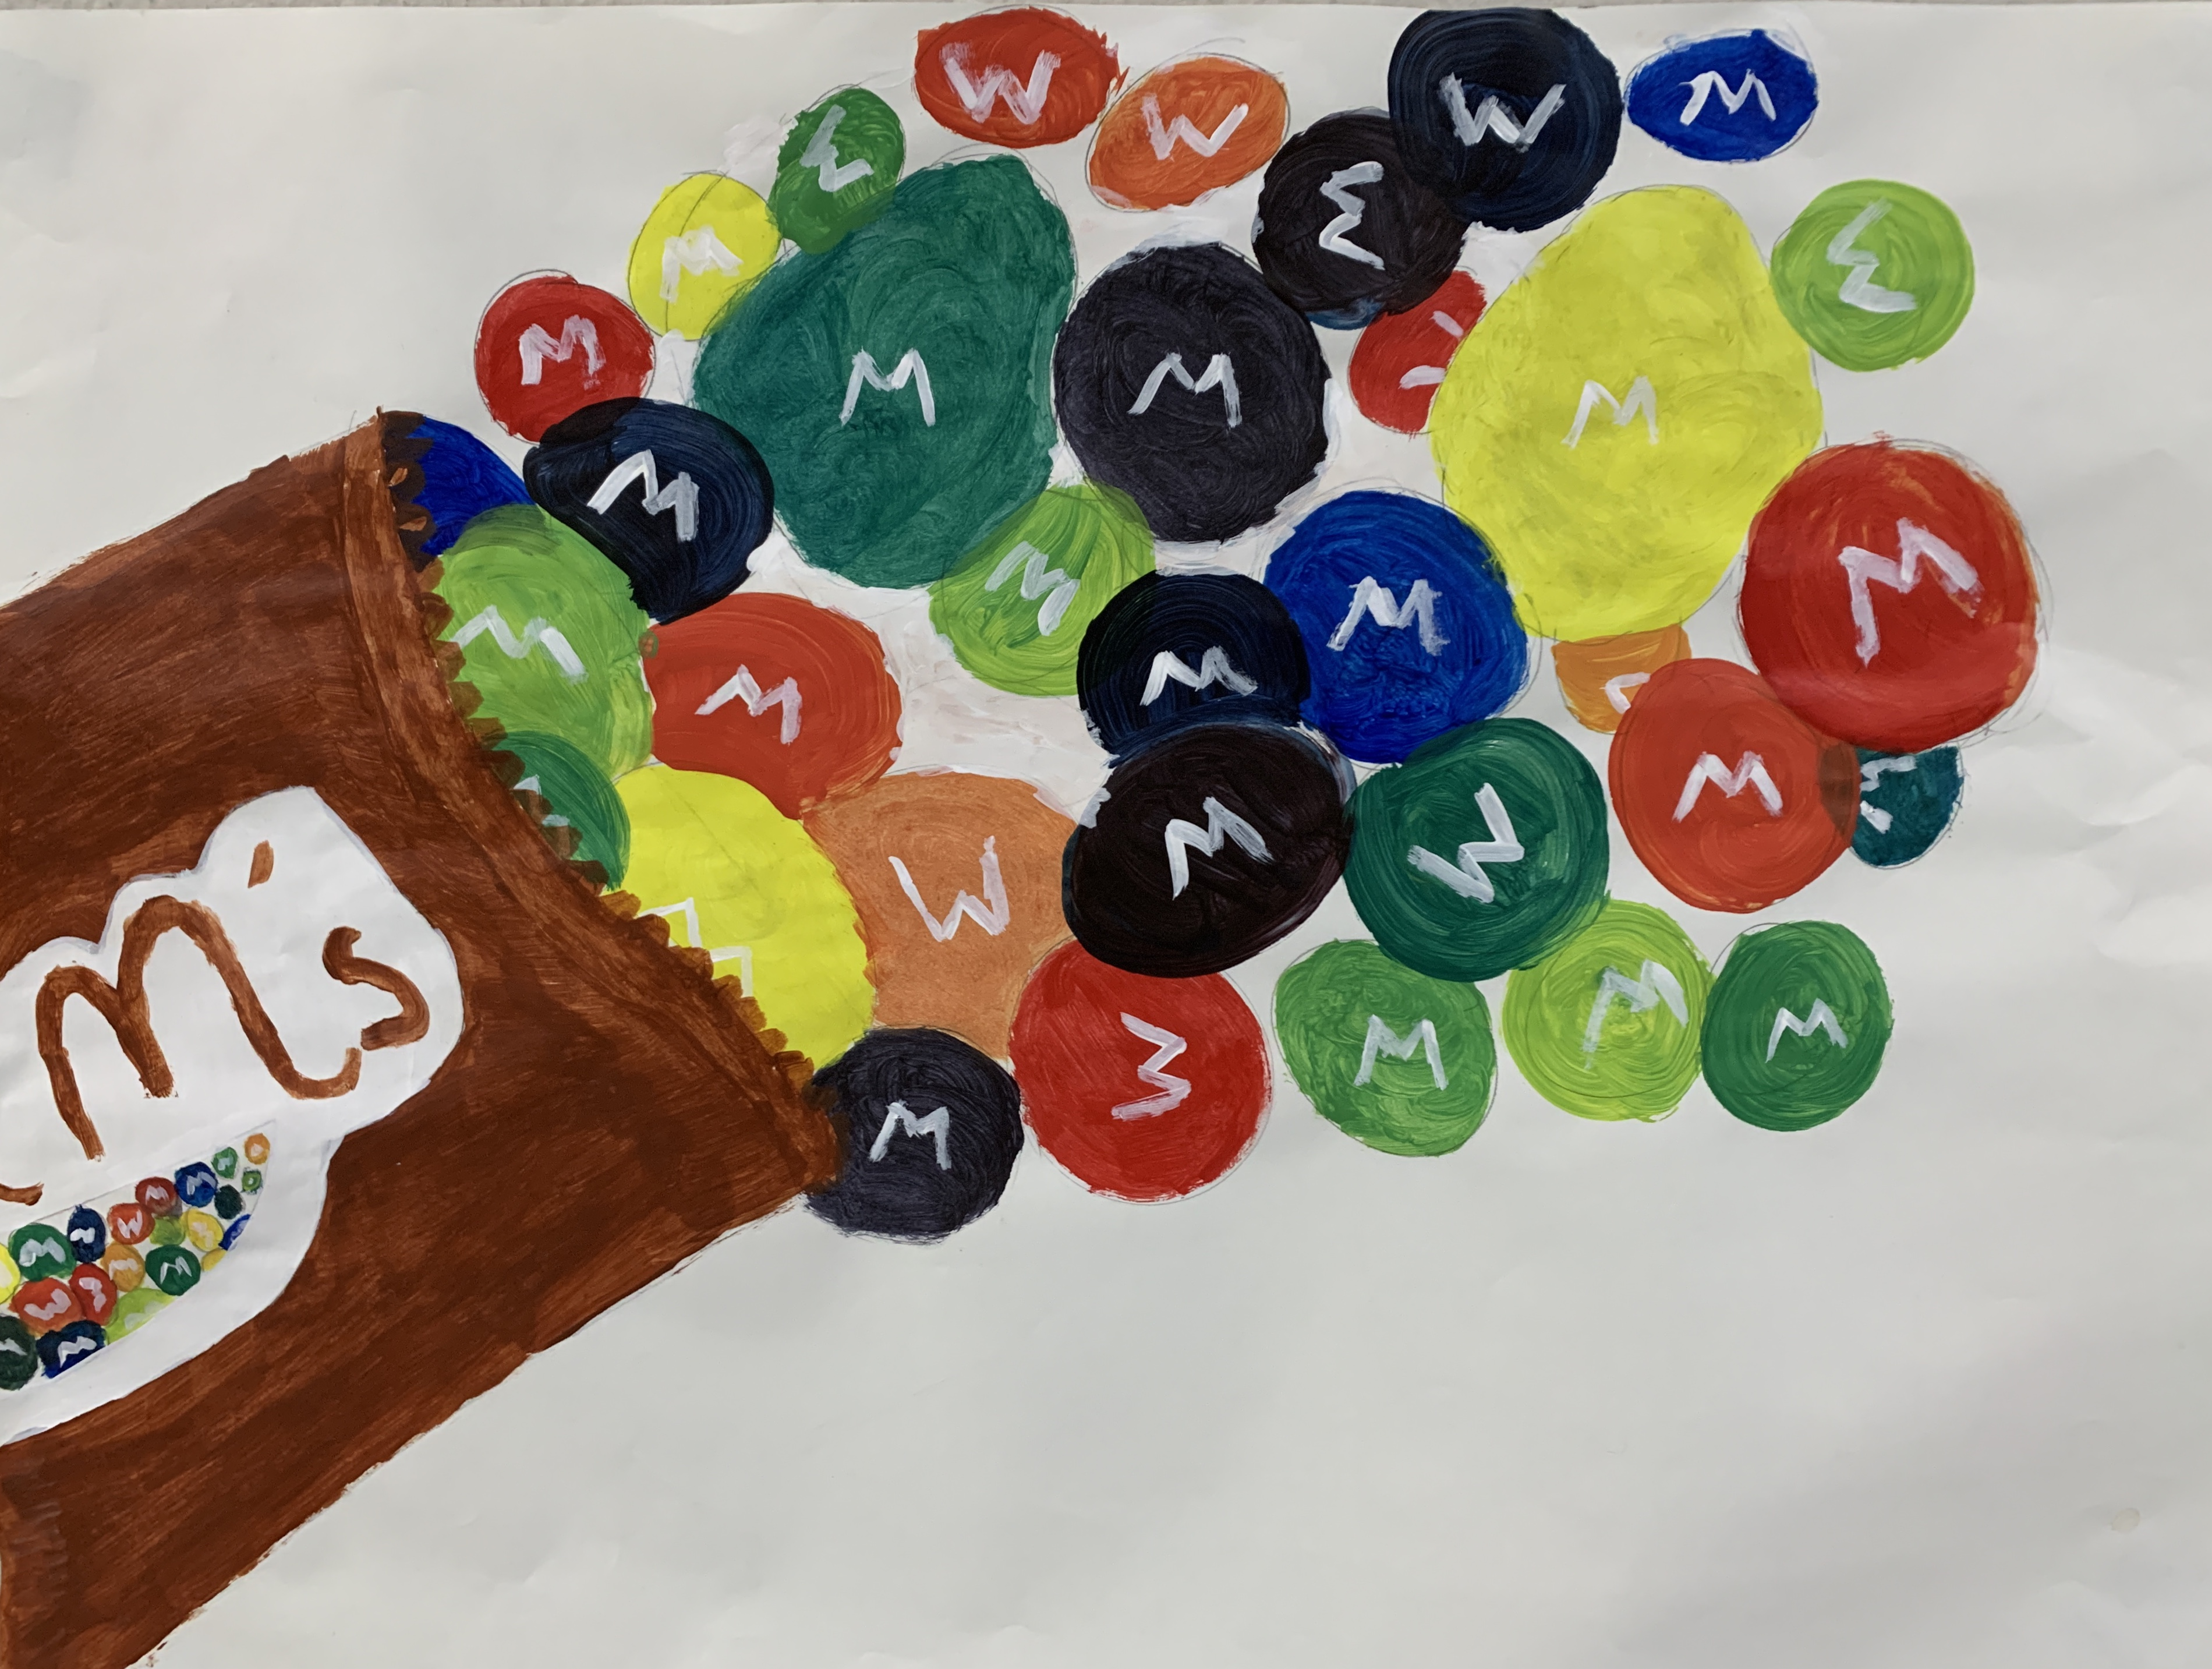 Students color wheel project - M&Ms